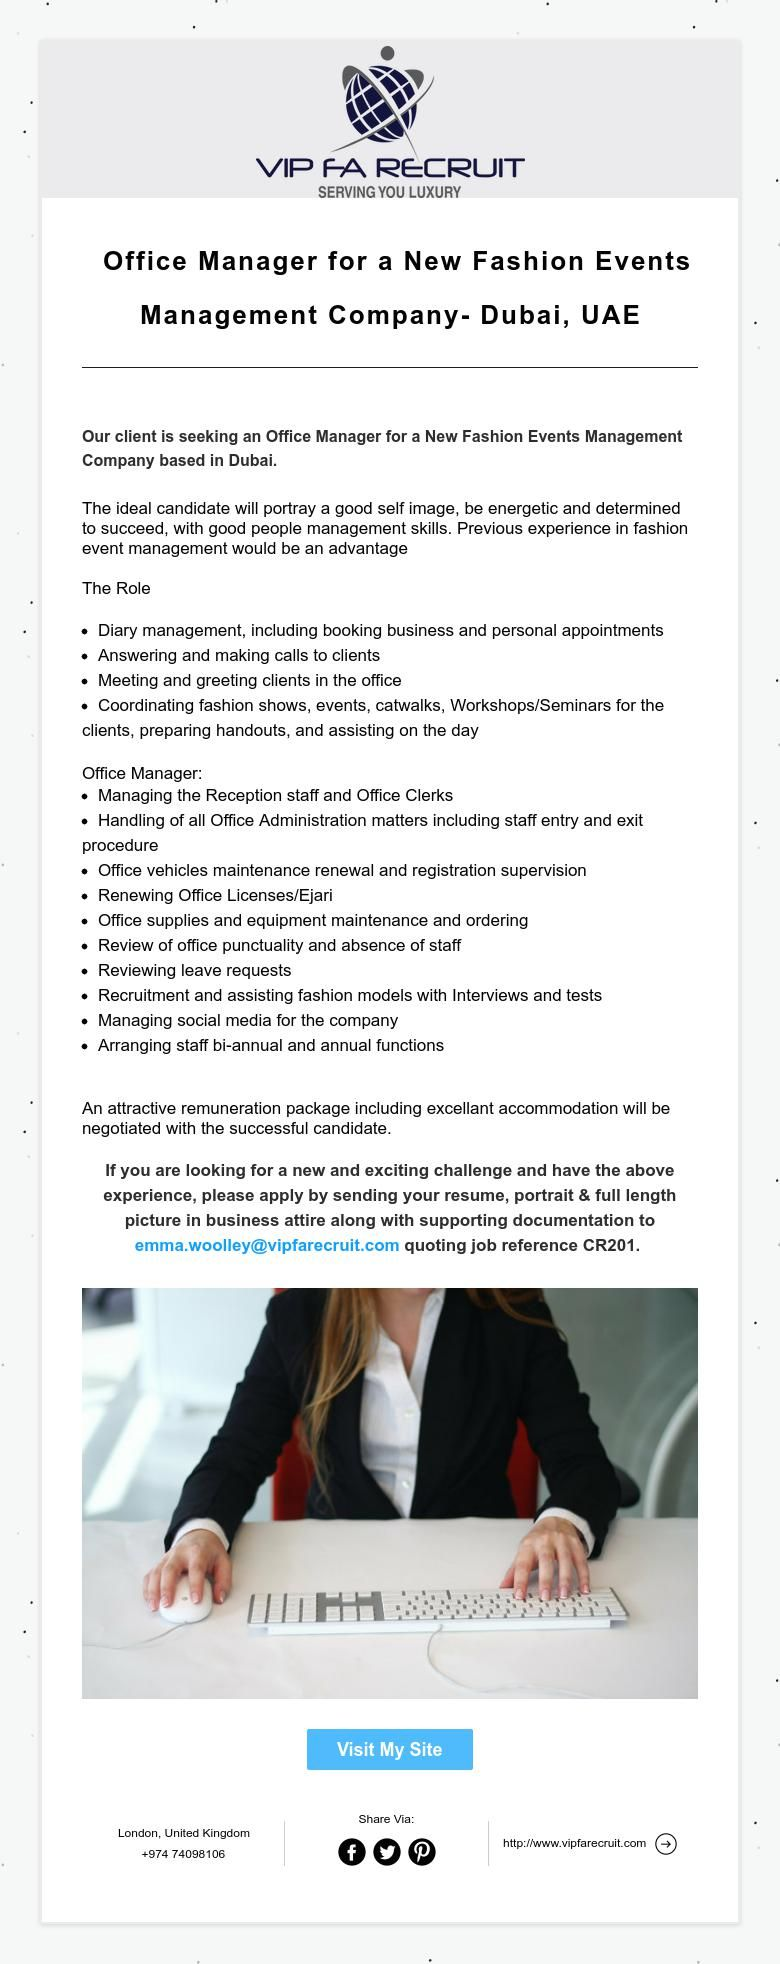 Office Manager for a New Fashion Events Management Company